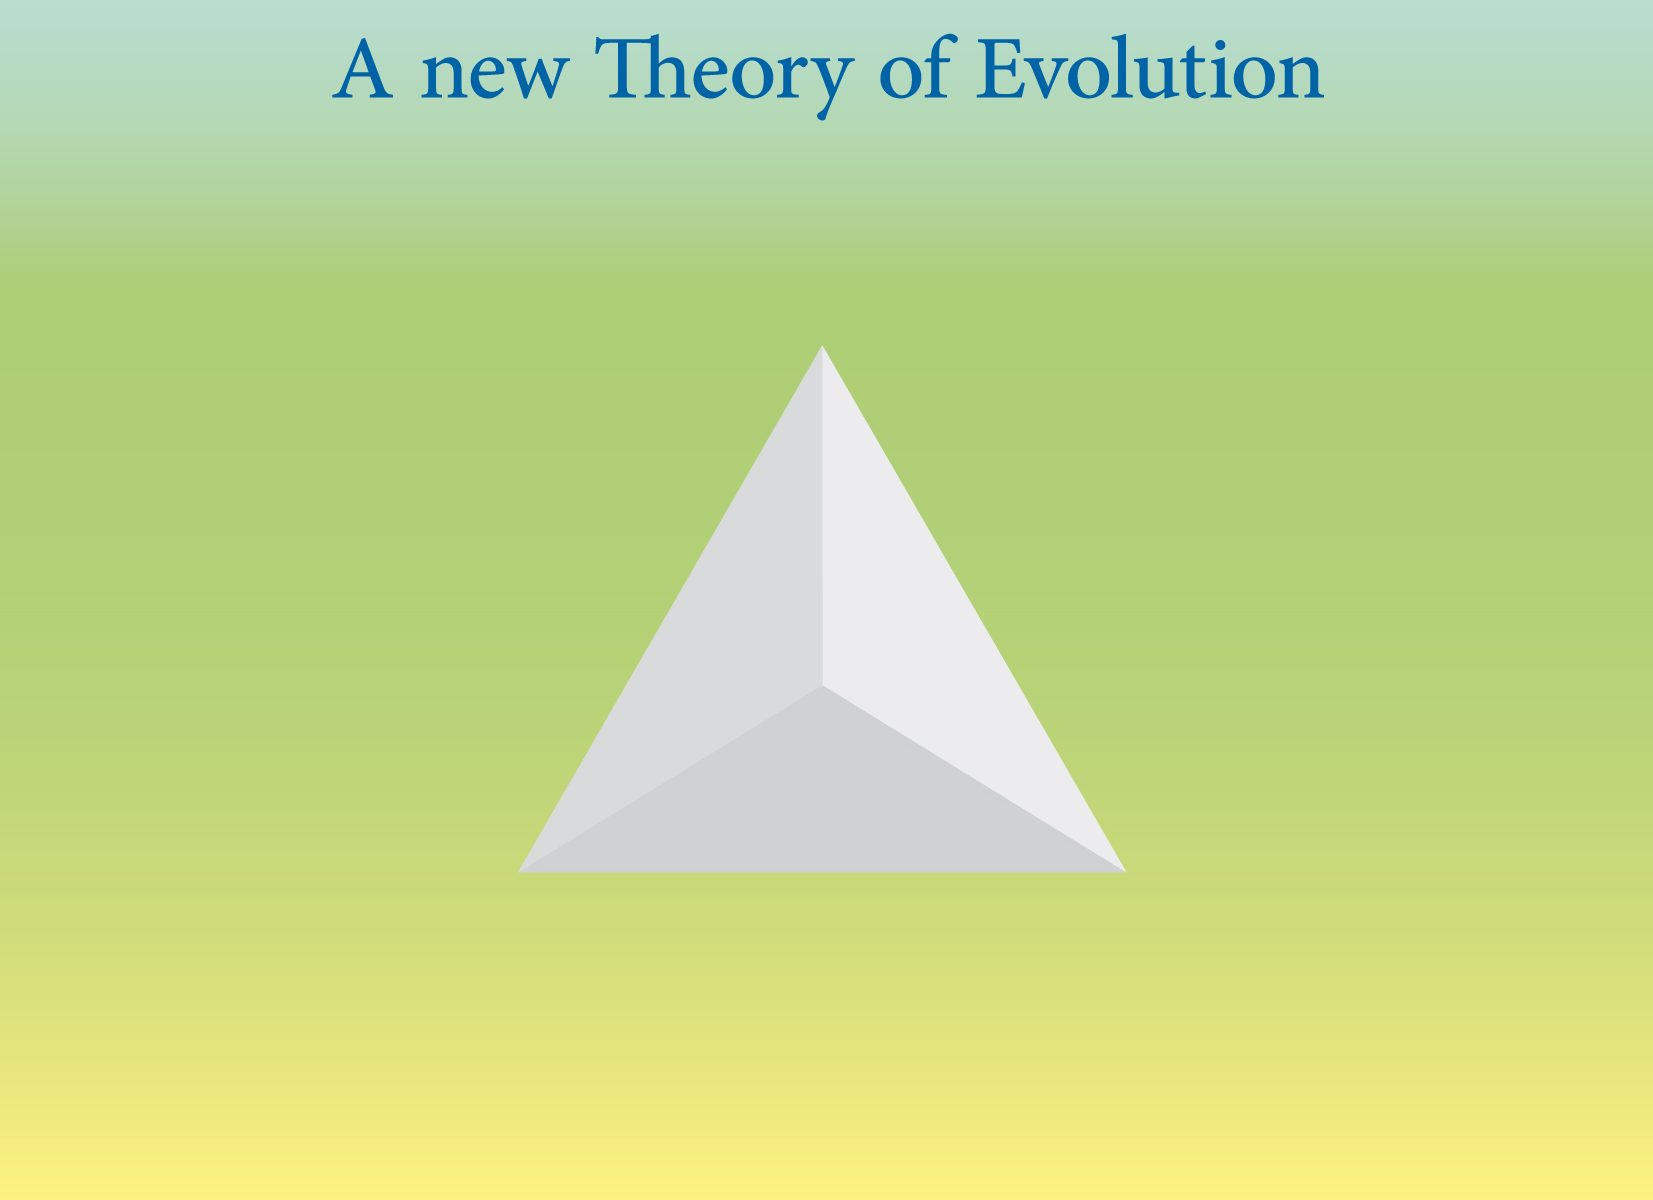 Martinus, Darwin and Intelligent Design. A new Theory of Evolution. Ole Therkelsen writes on the basis of Martinus Cosmology